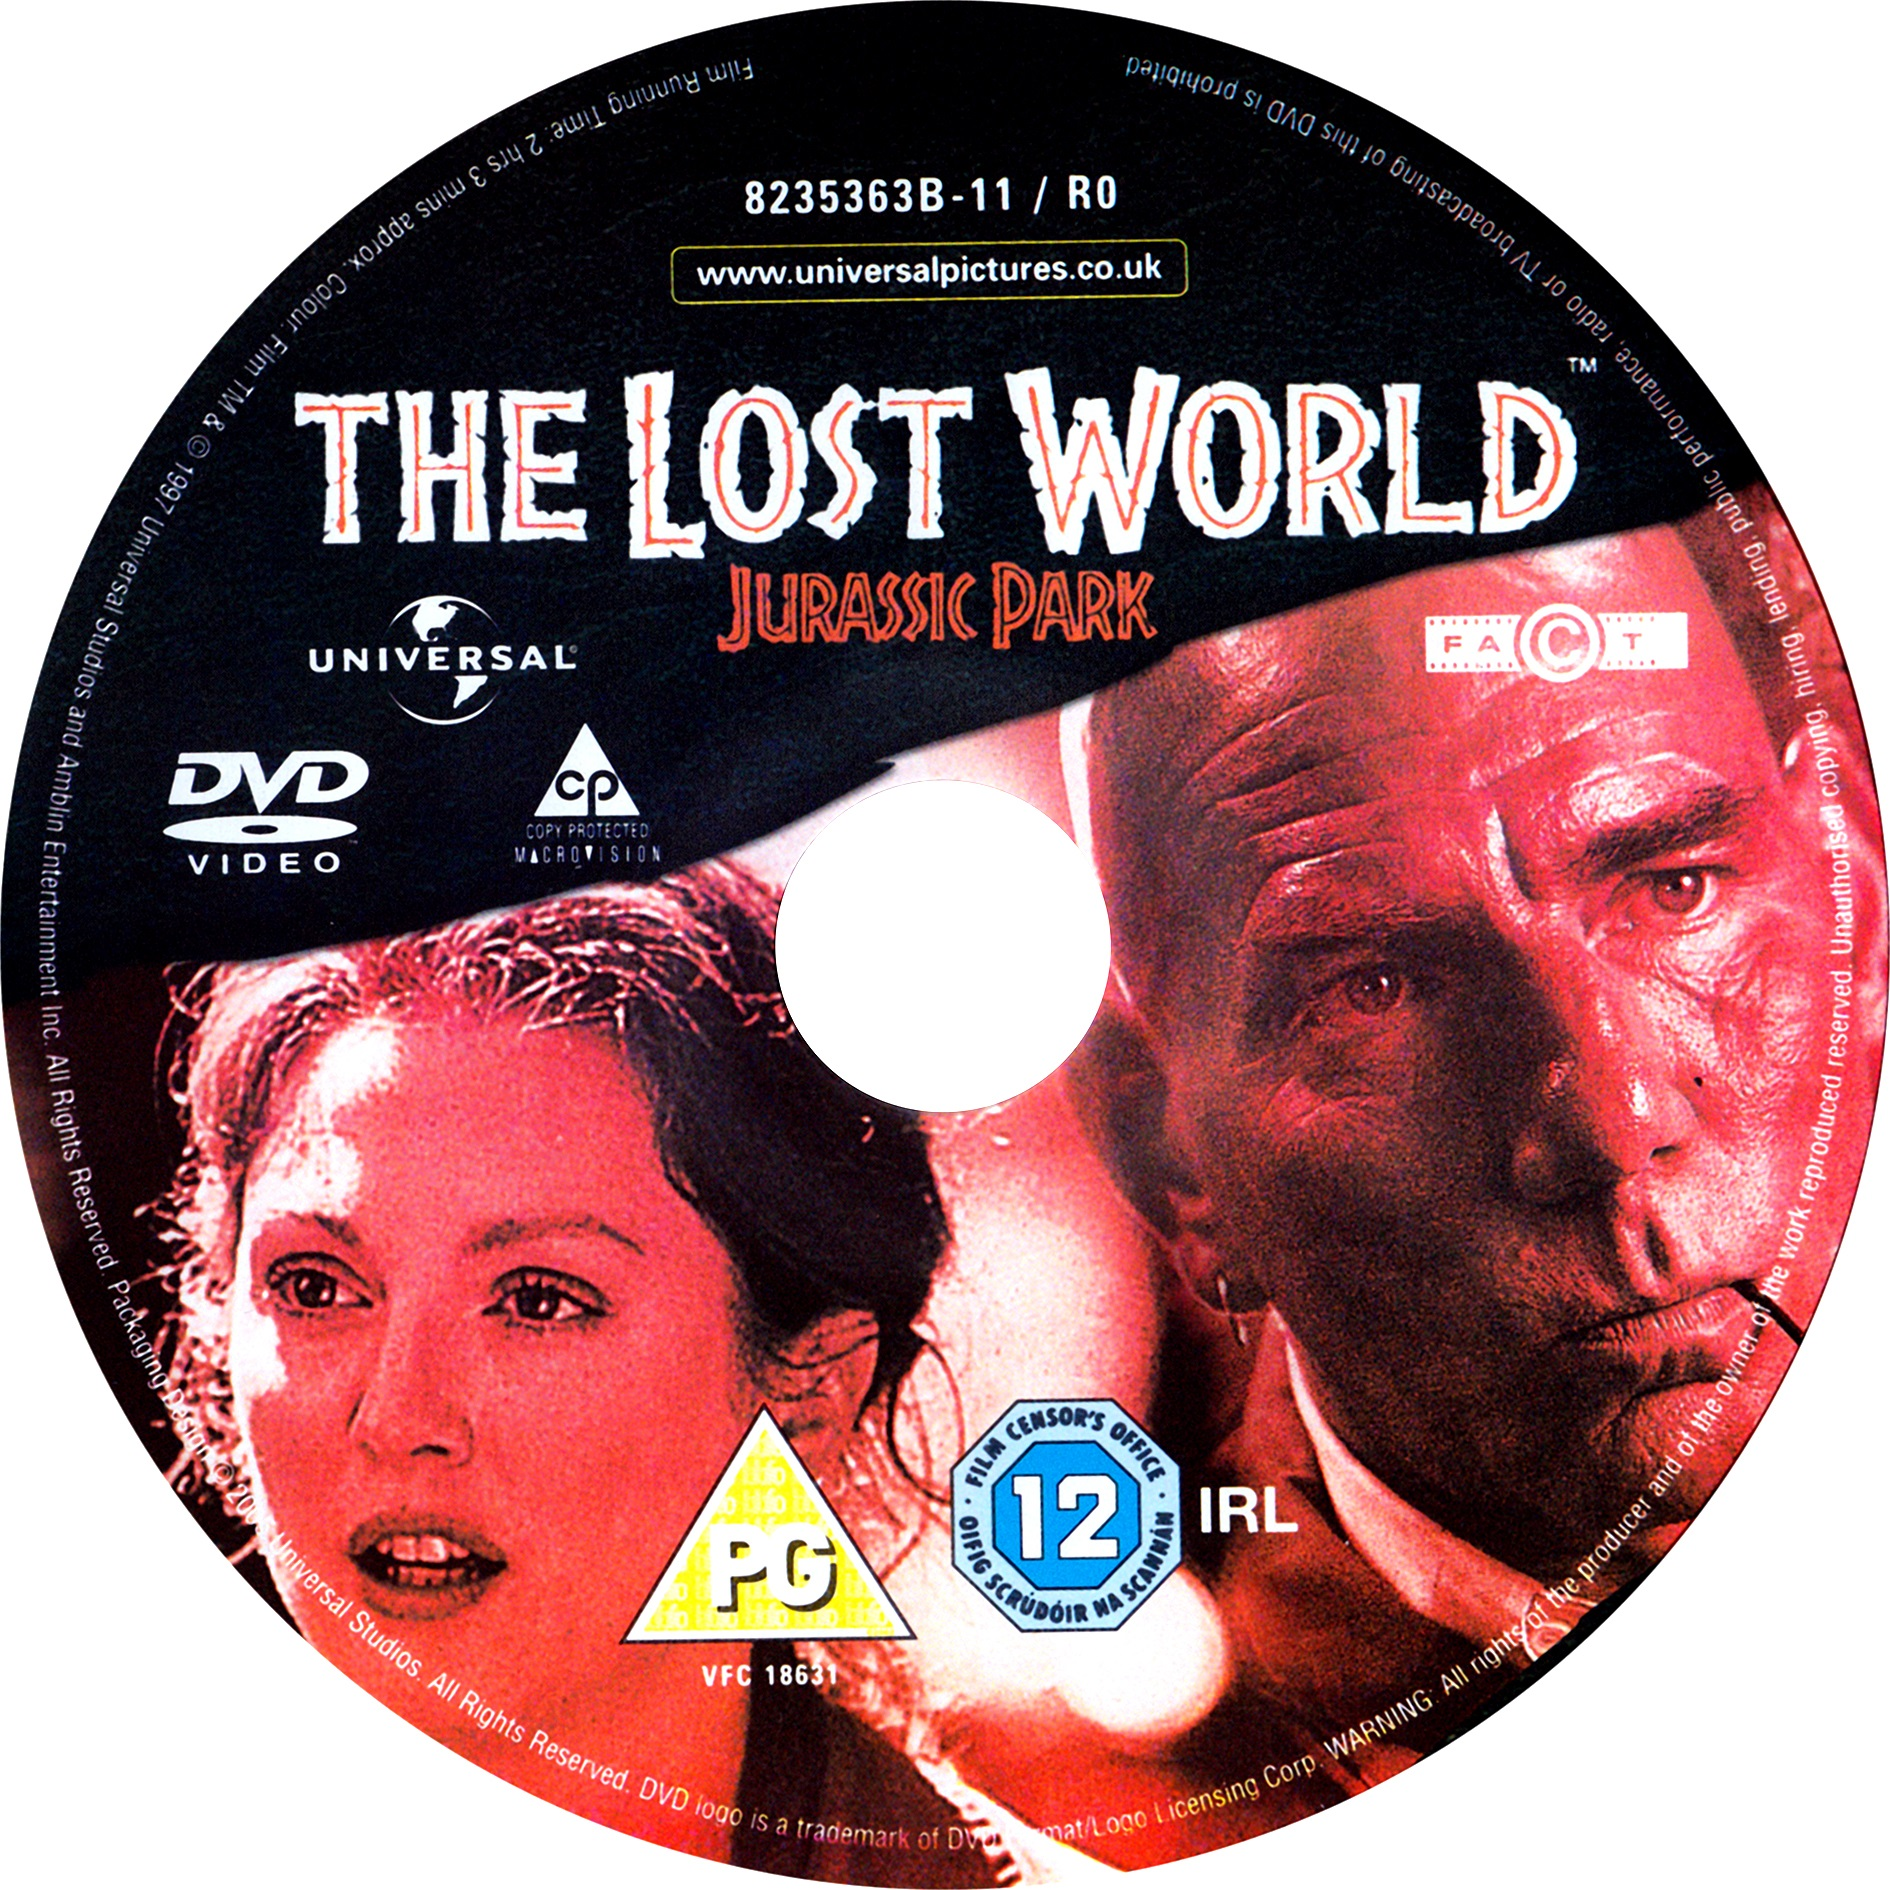 The Lost World Jurassic Park 1997 R2 Label Dvd Covers Cover Century Over 500 000 Album Art Covers For Free